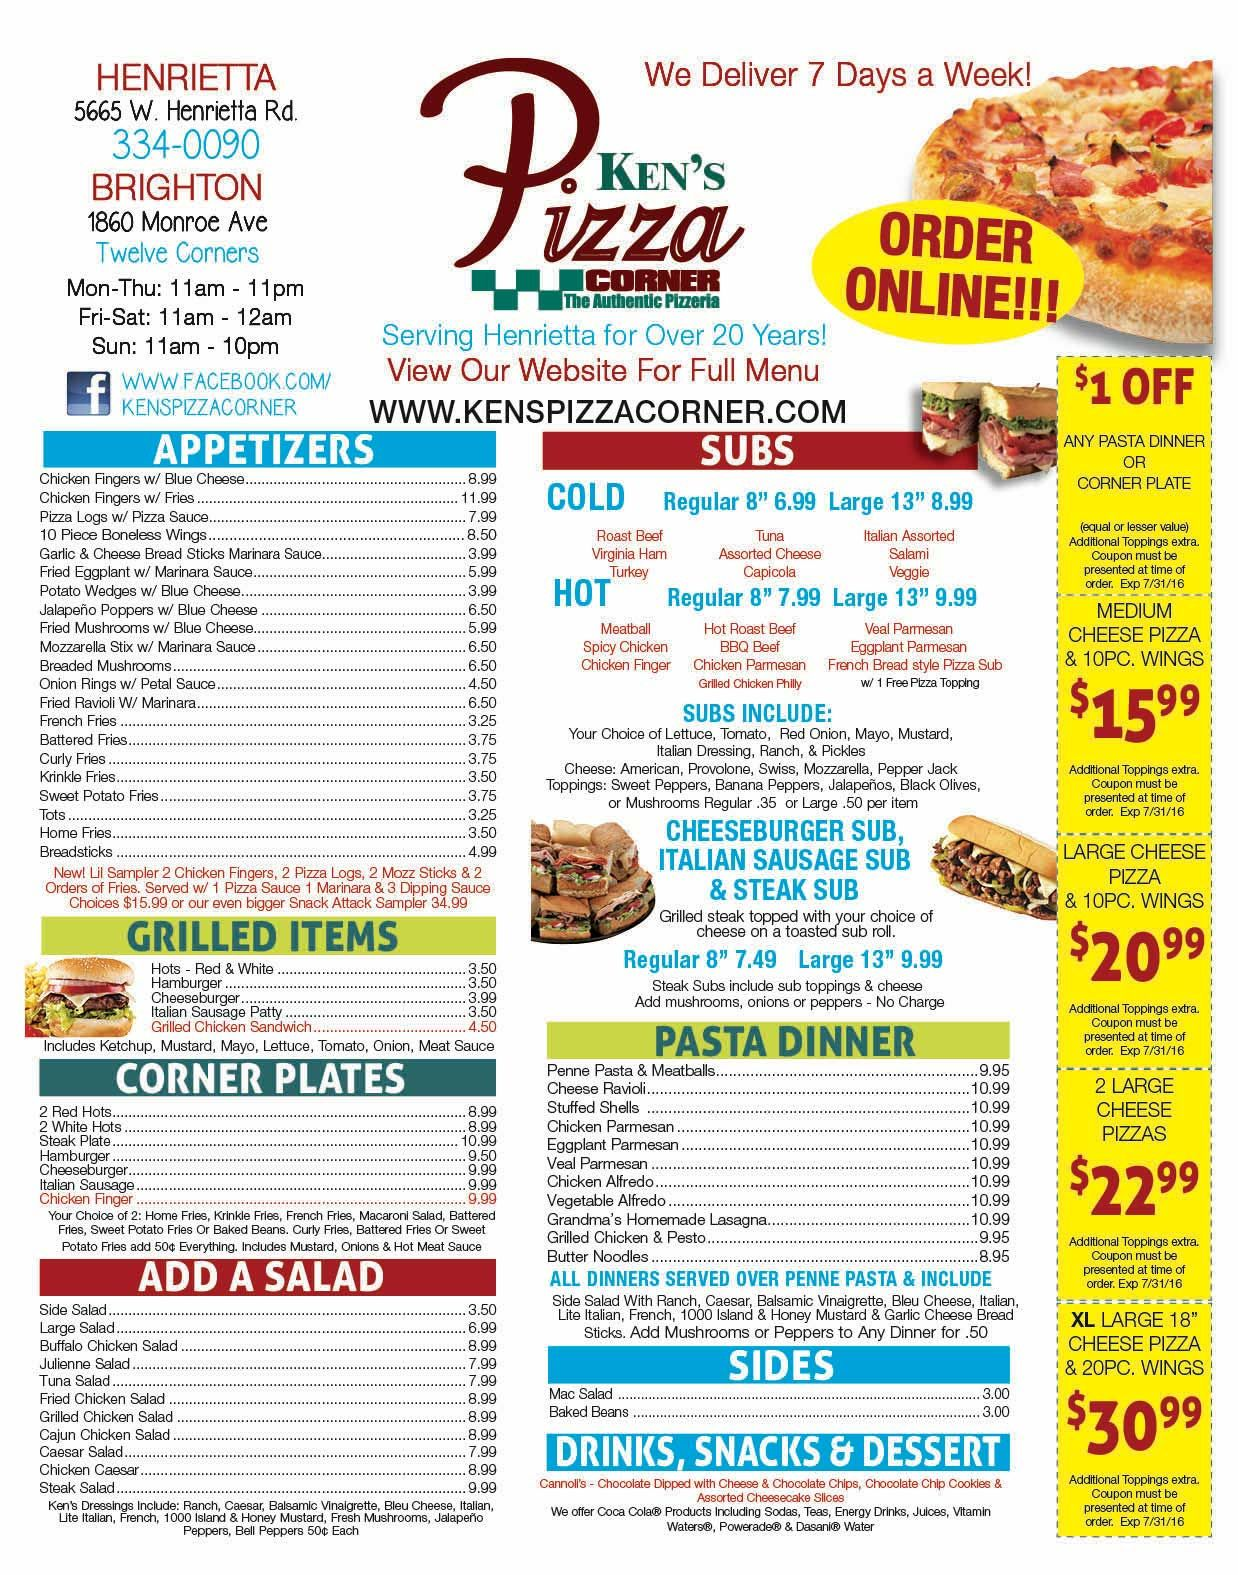 Nypizza coupons